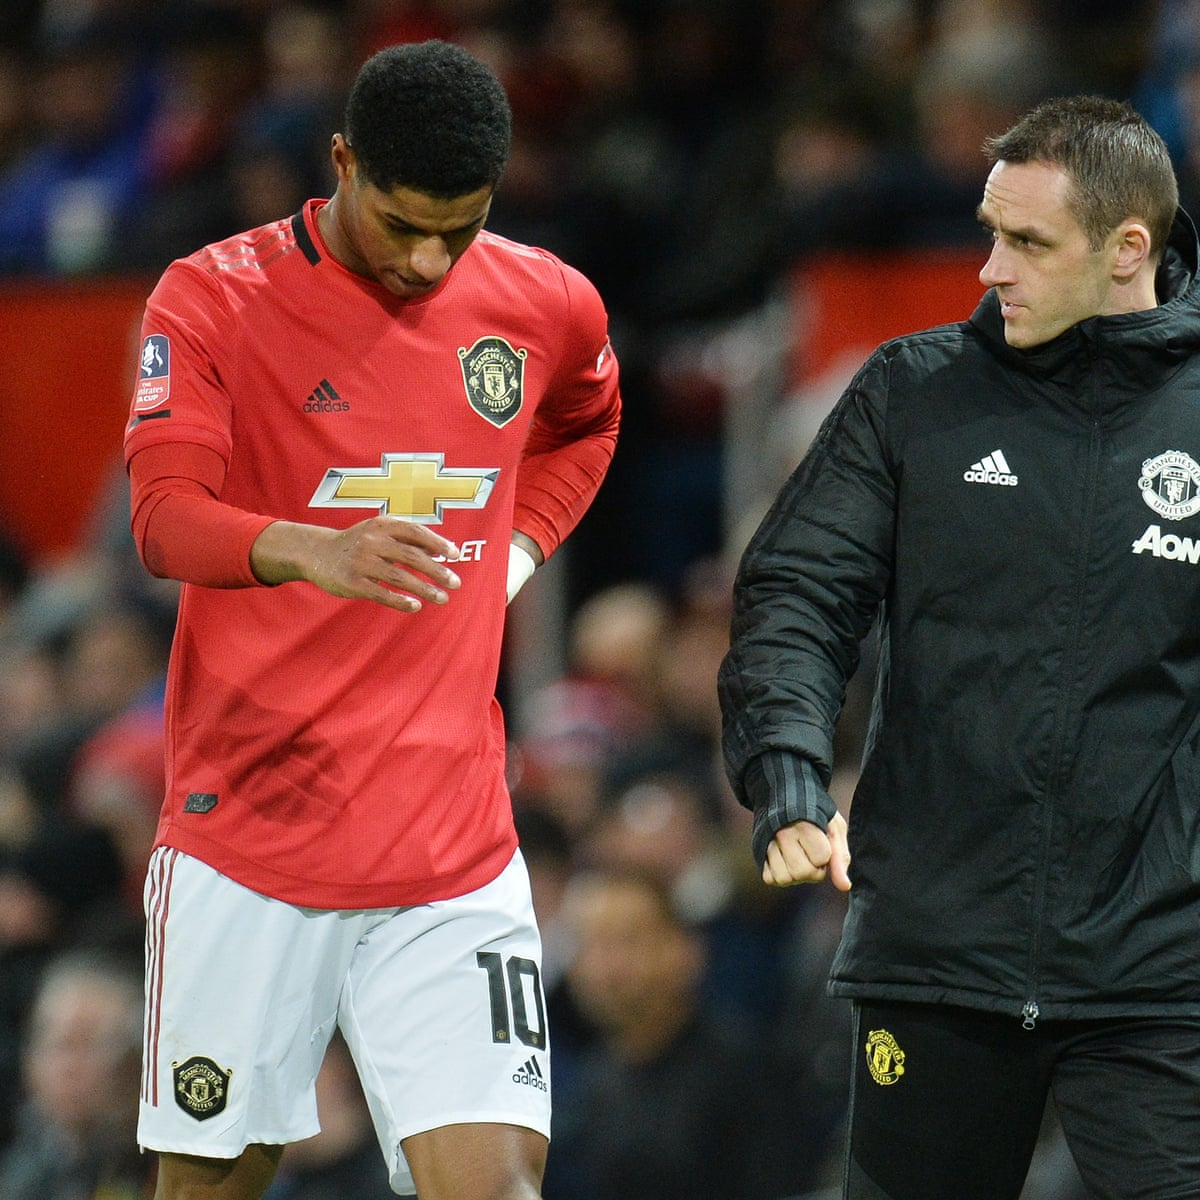 Manchester United S Marcus Rashford Faces Fitness Fight For Liverpool Trip Manchester United The Guardian